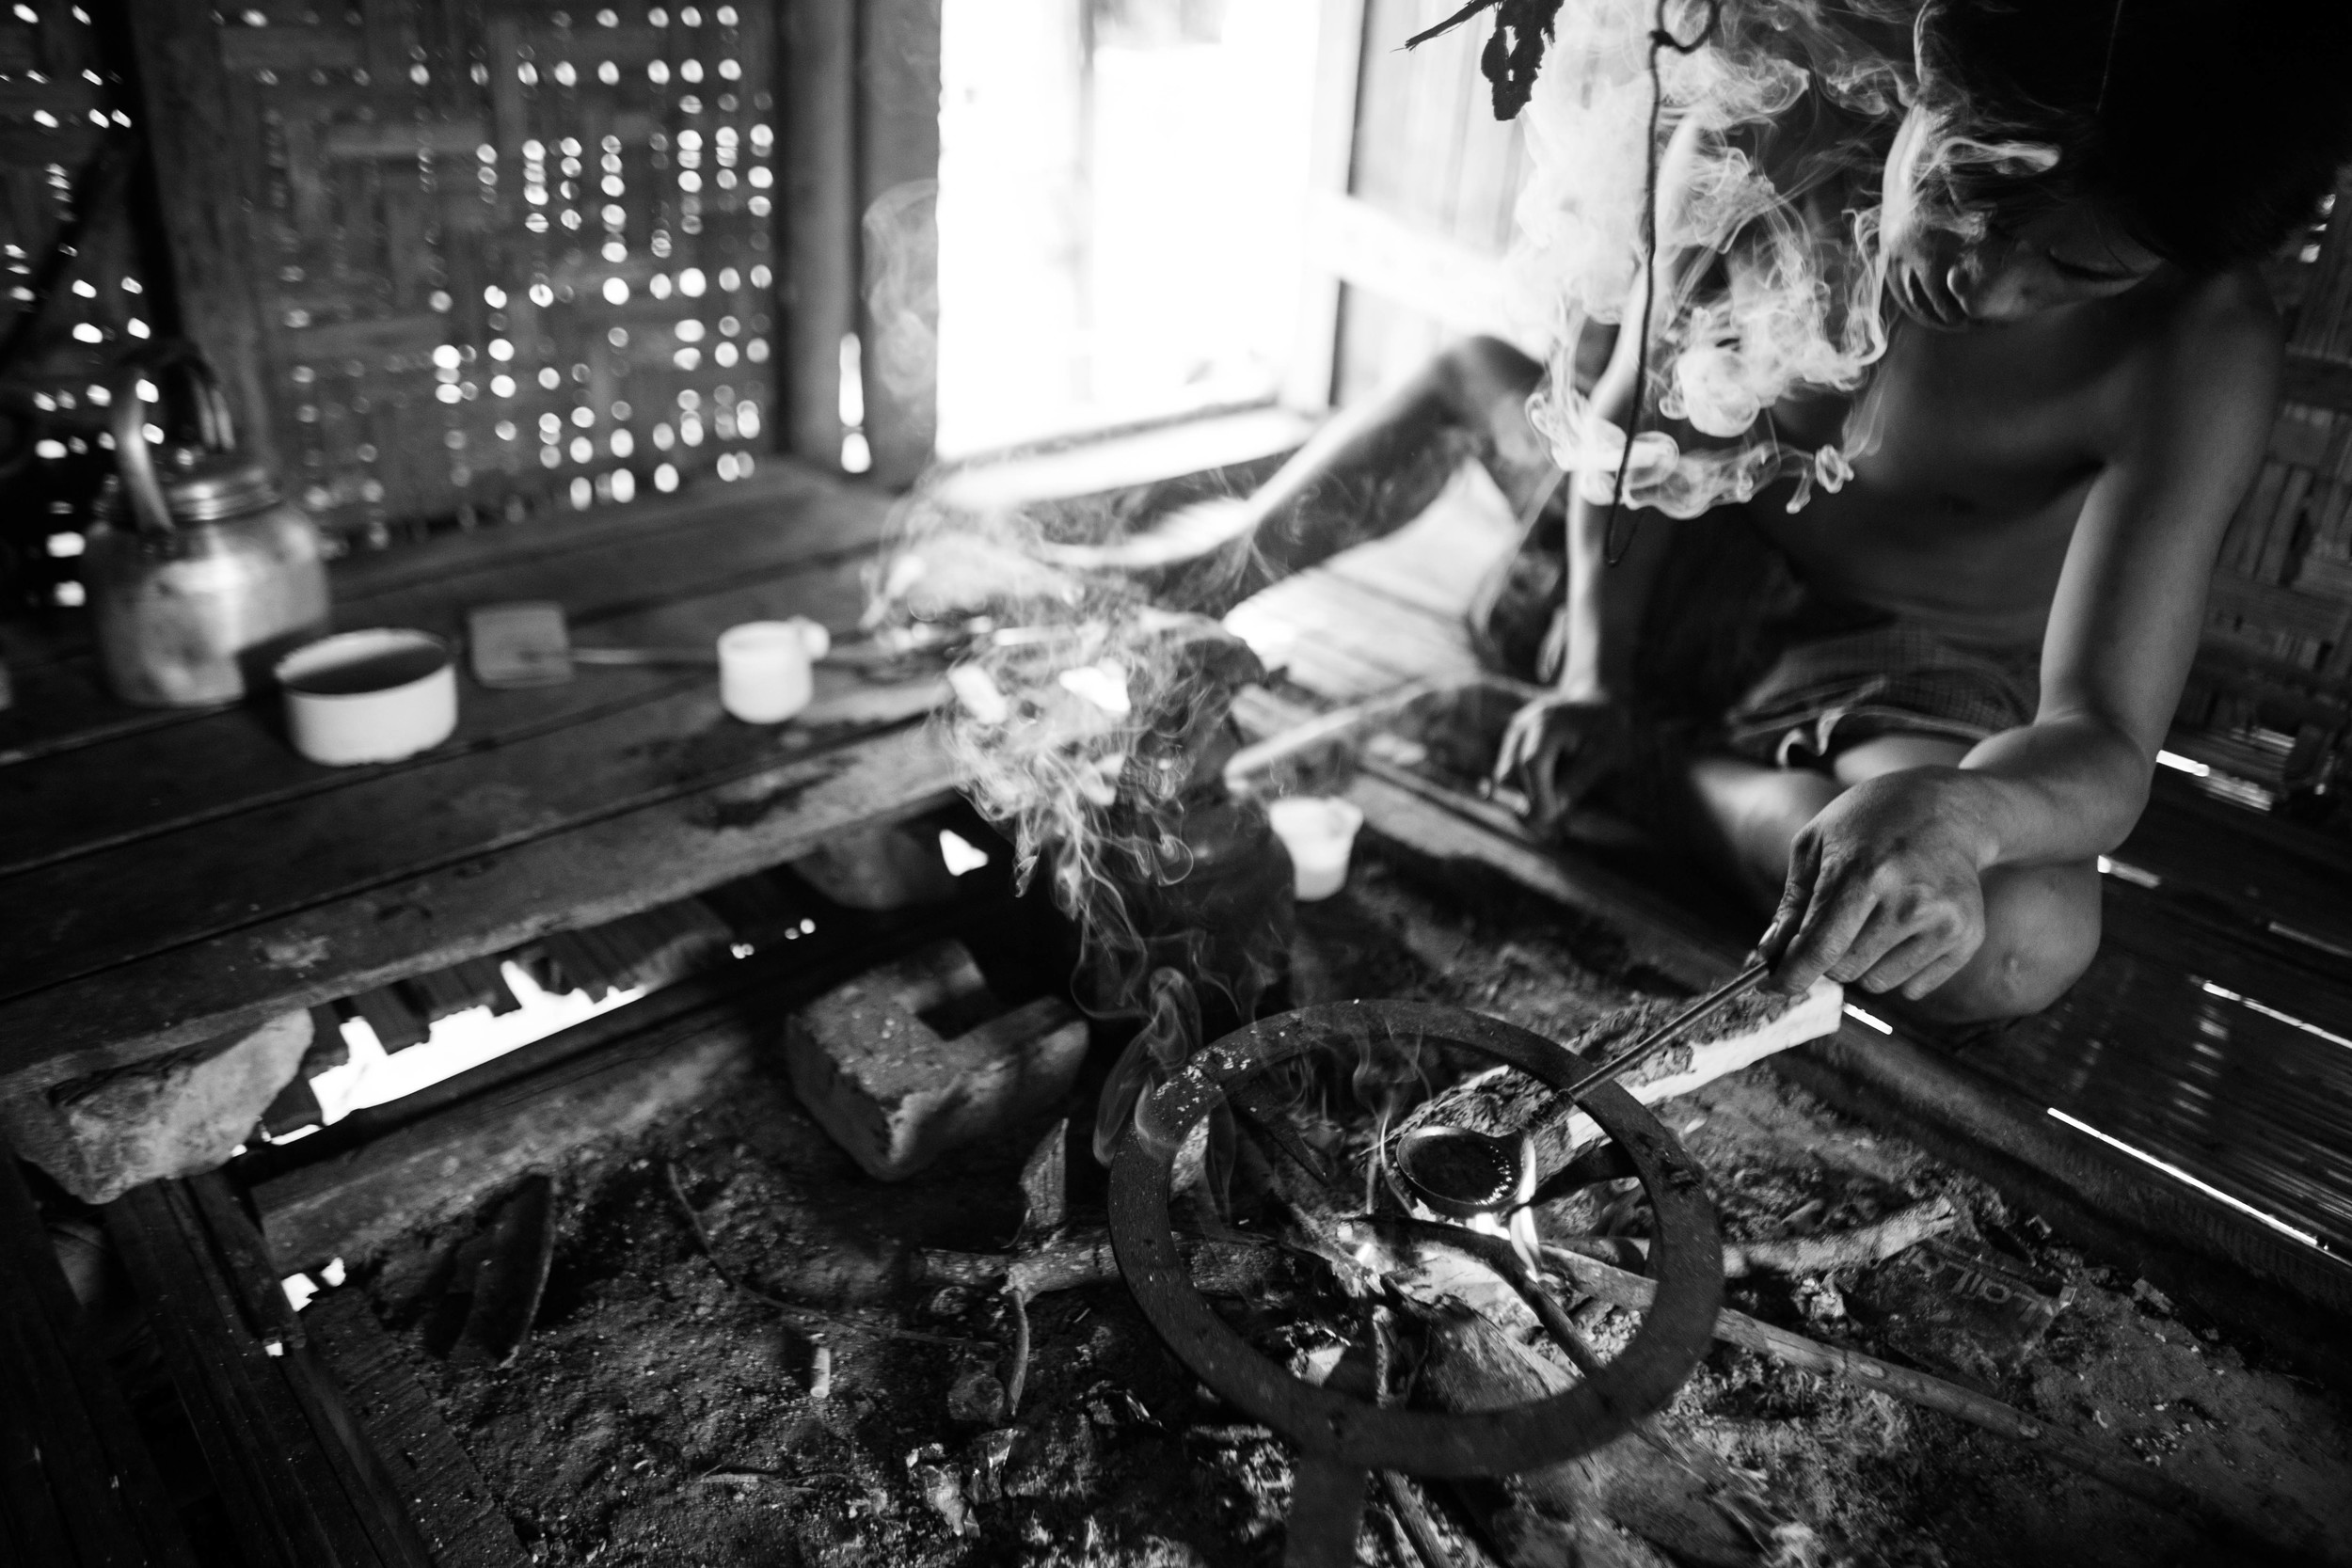 """After four days in the YCC rehab camp, """"Hkun Aung"""" opted out, returned to his village and immediately found black opium to inject and smoke. This village two hours outside of Myitkyinaconsists of about 70 households. Most of the men have an opium habit."""